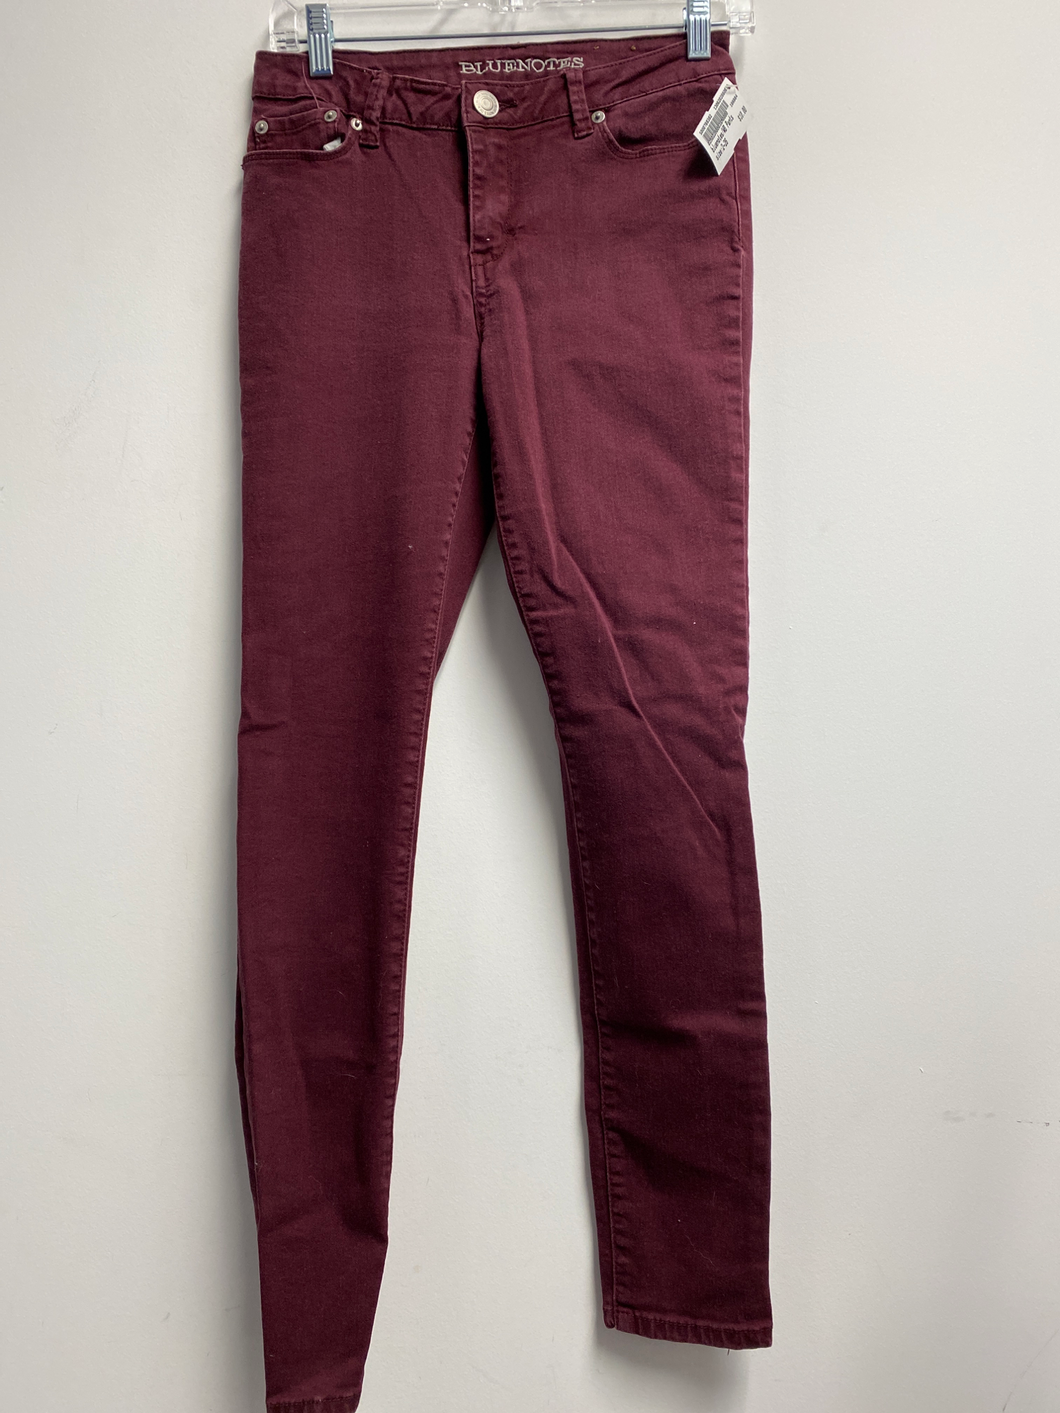 Bluenotes Pants Size 2 (26)